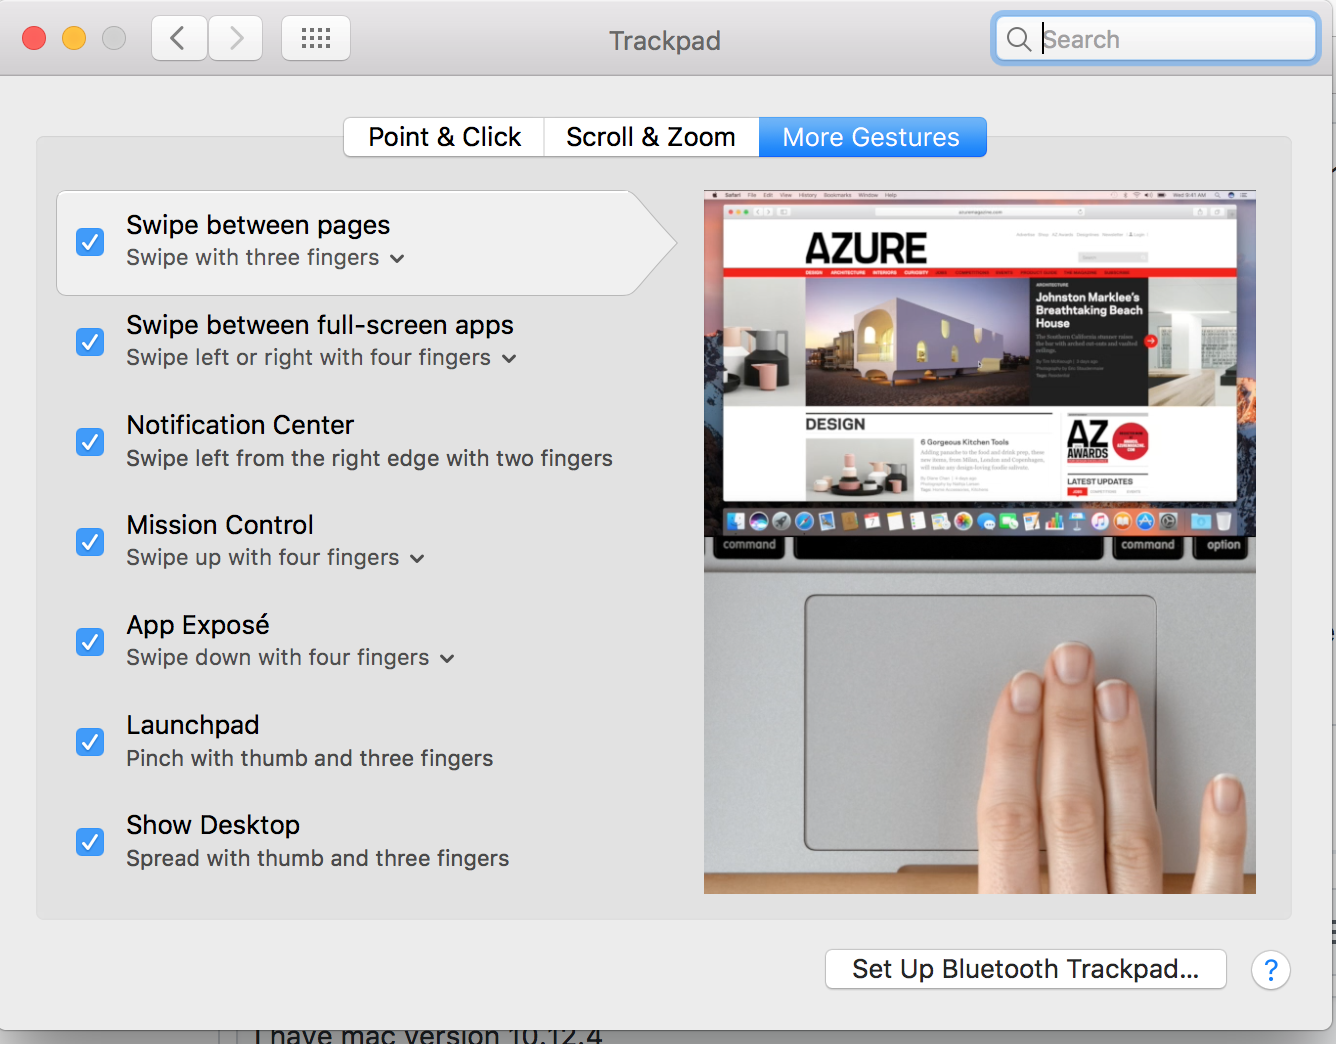 Macbook trackpad gestures not working  · Issue #9845 · brave